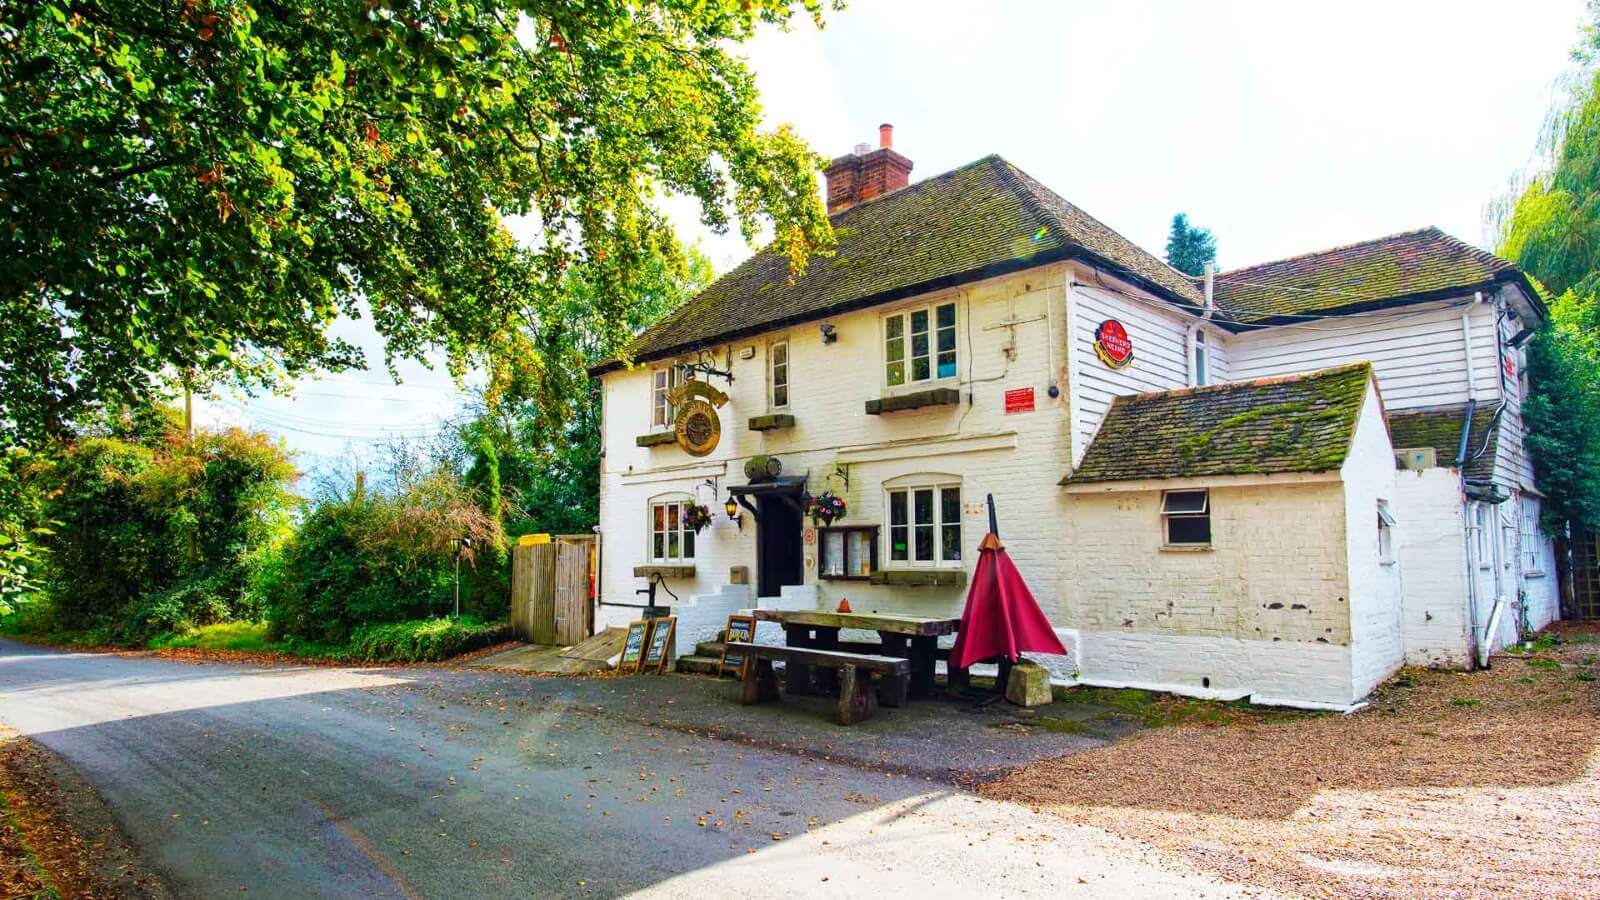 The Ringlestone Inn